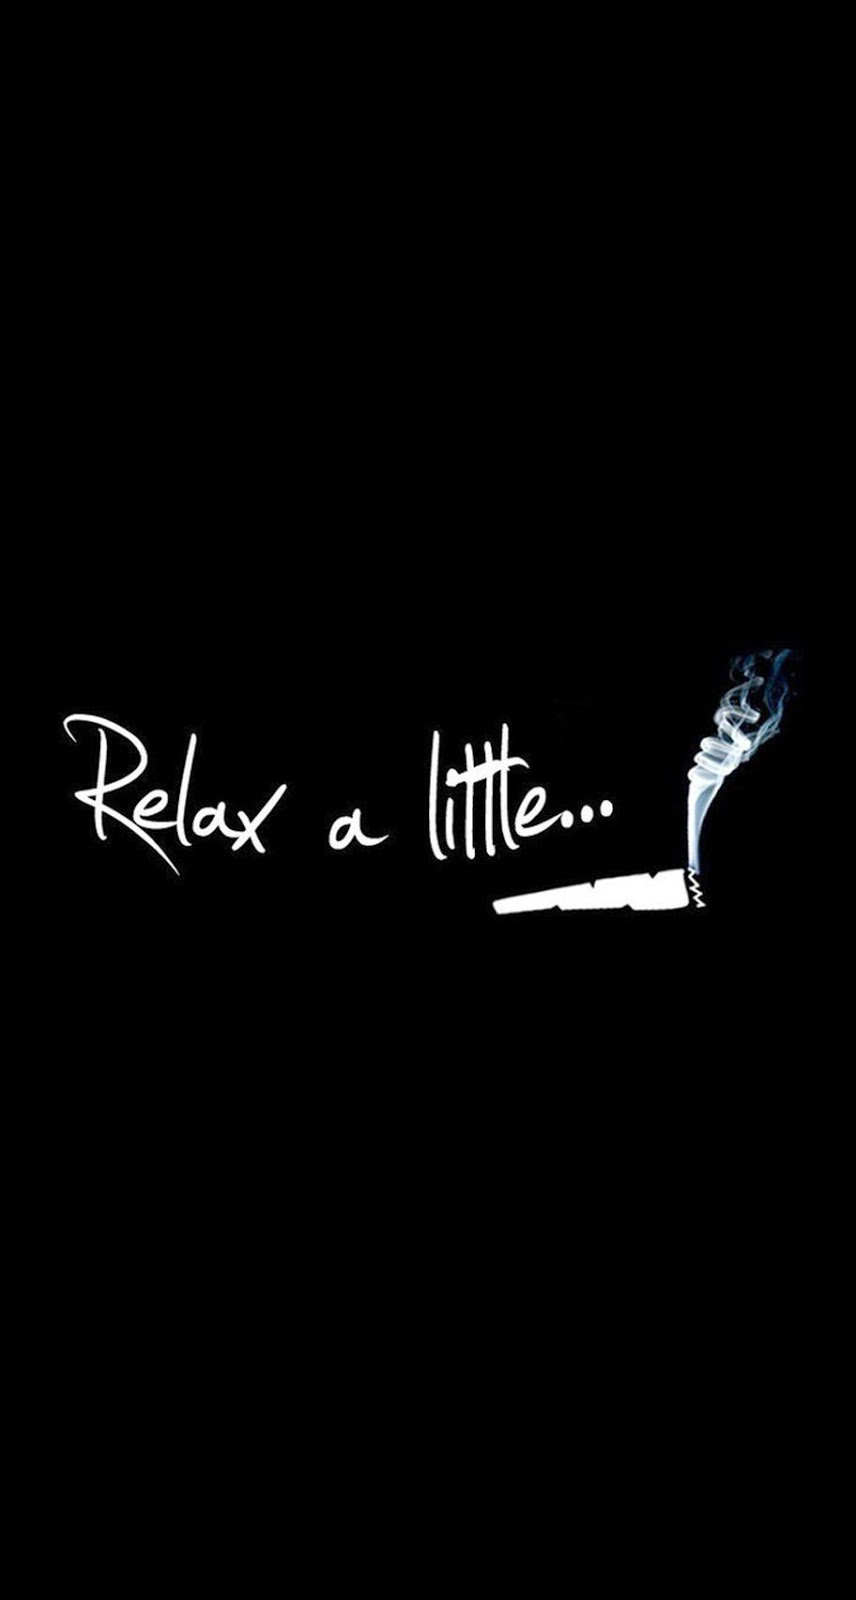 Relax A Little Smoke Weed iPhone 6 Plus HD Wallpaper